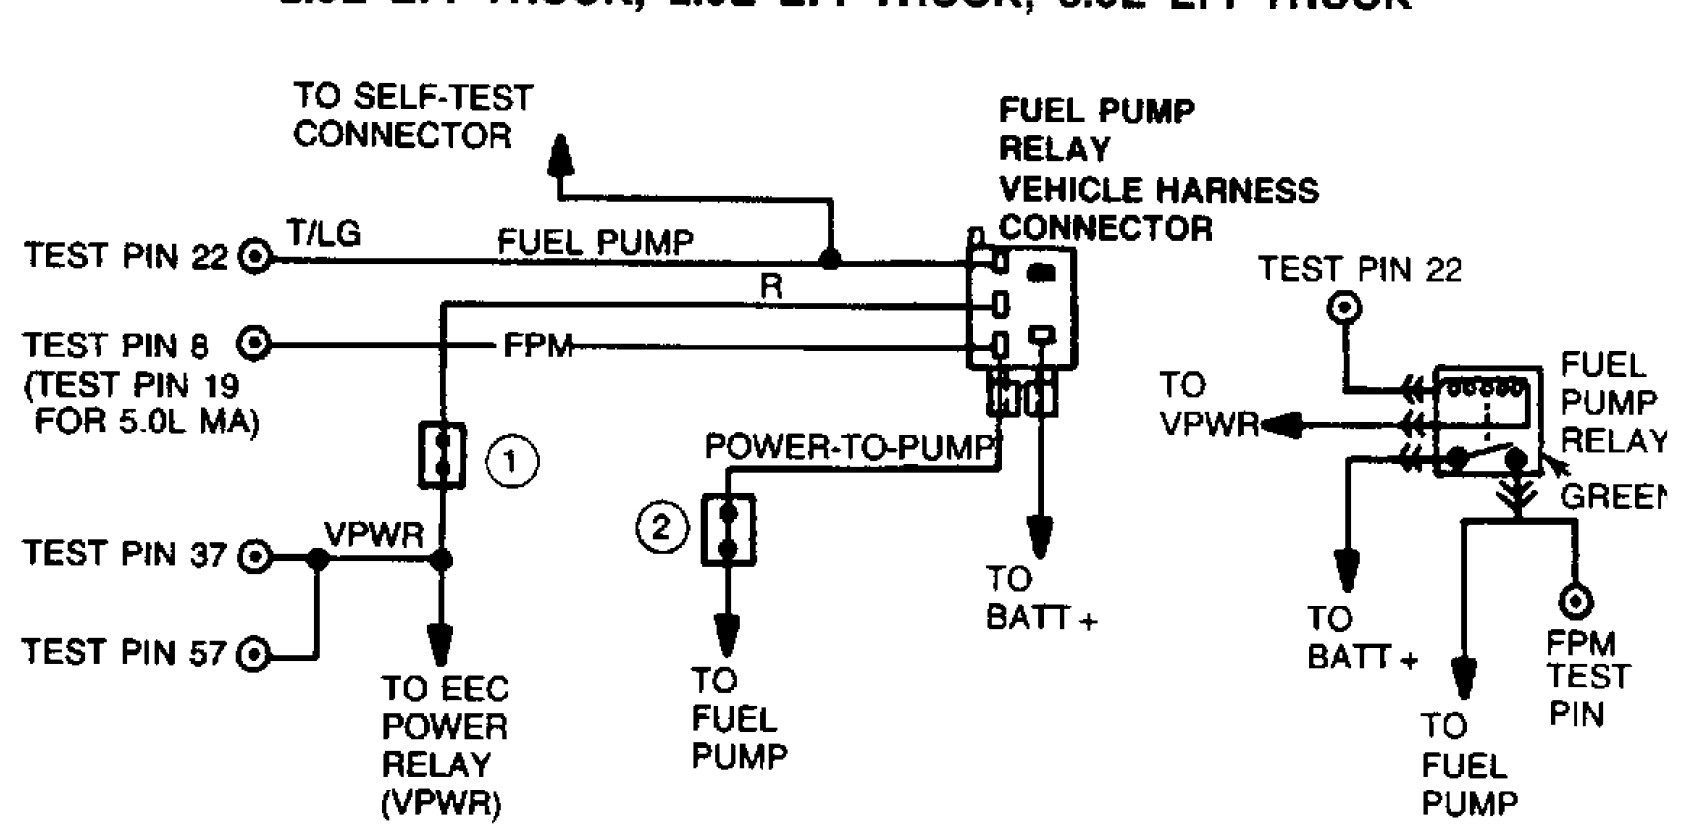 hight resolution of 1988 ford ranger fuel system wiring diagram